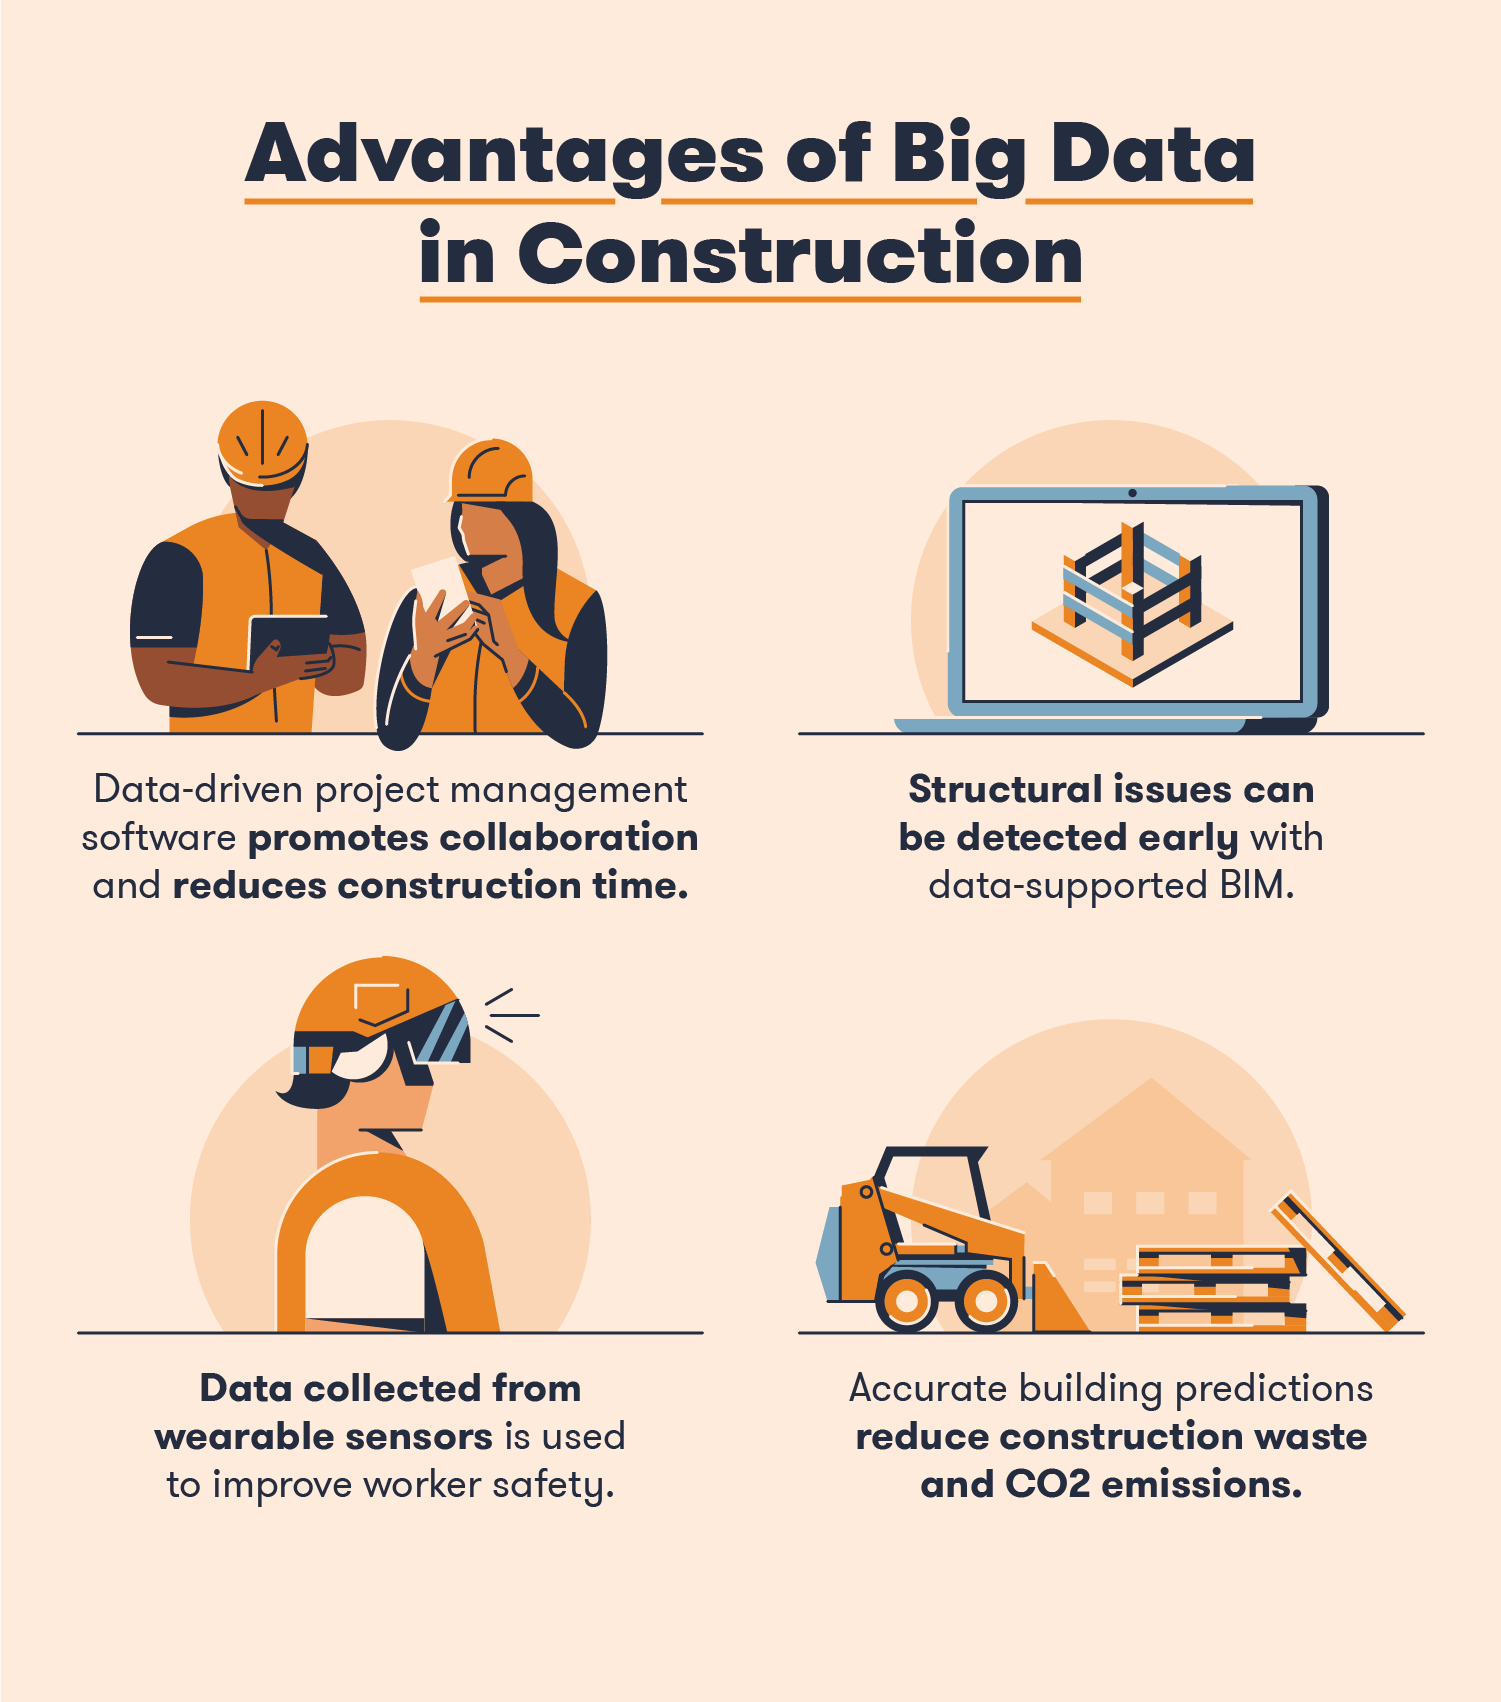 Advantages of Big Data in Construction